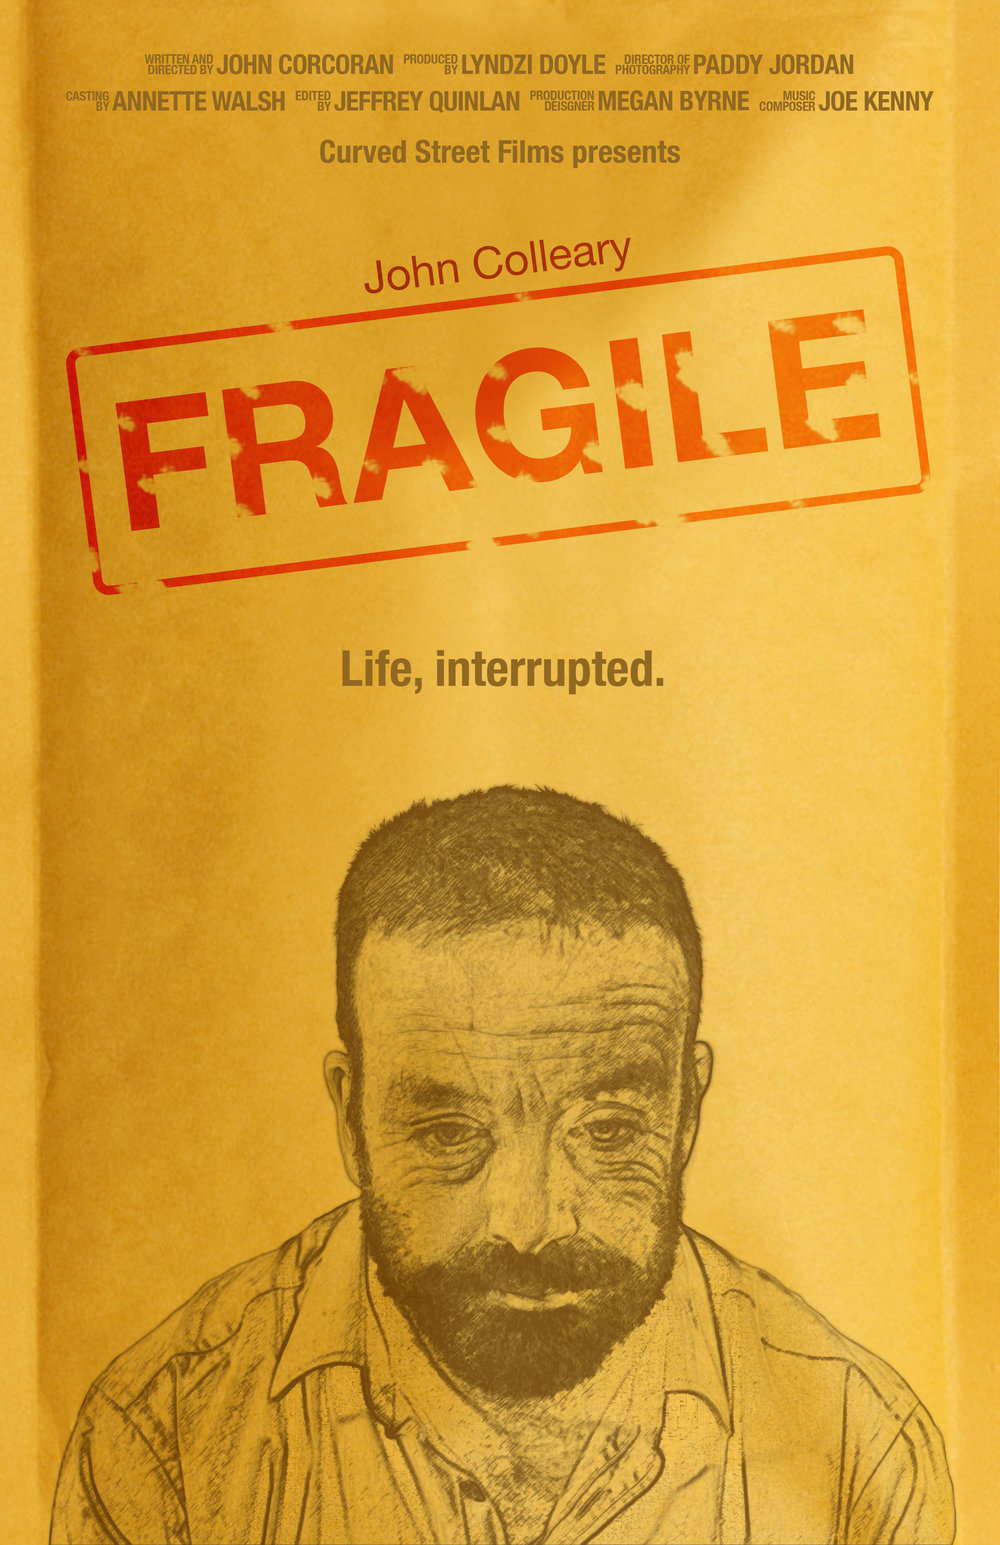 'Fragile'   - starring John Colleary, Directed by John Corcoran and Cast by Annette Walsh has been officially selected for the Kerry Film Festival!http://www.kerryfilmfestival.com